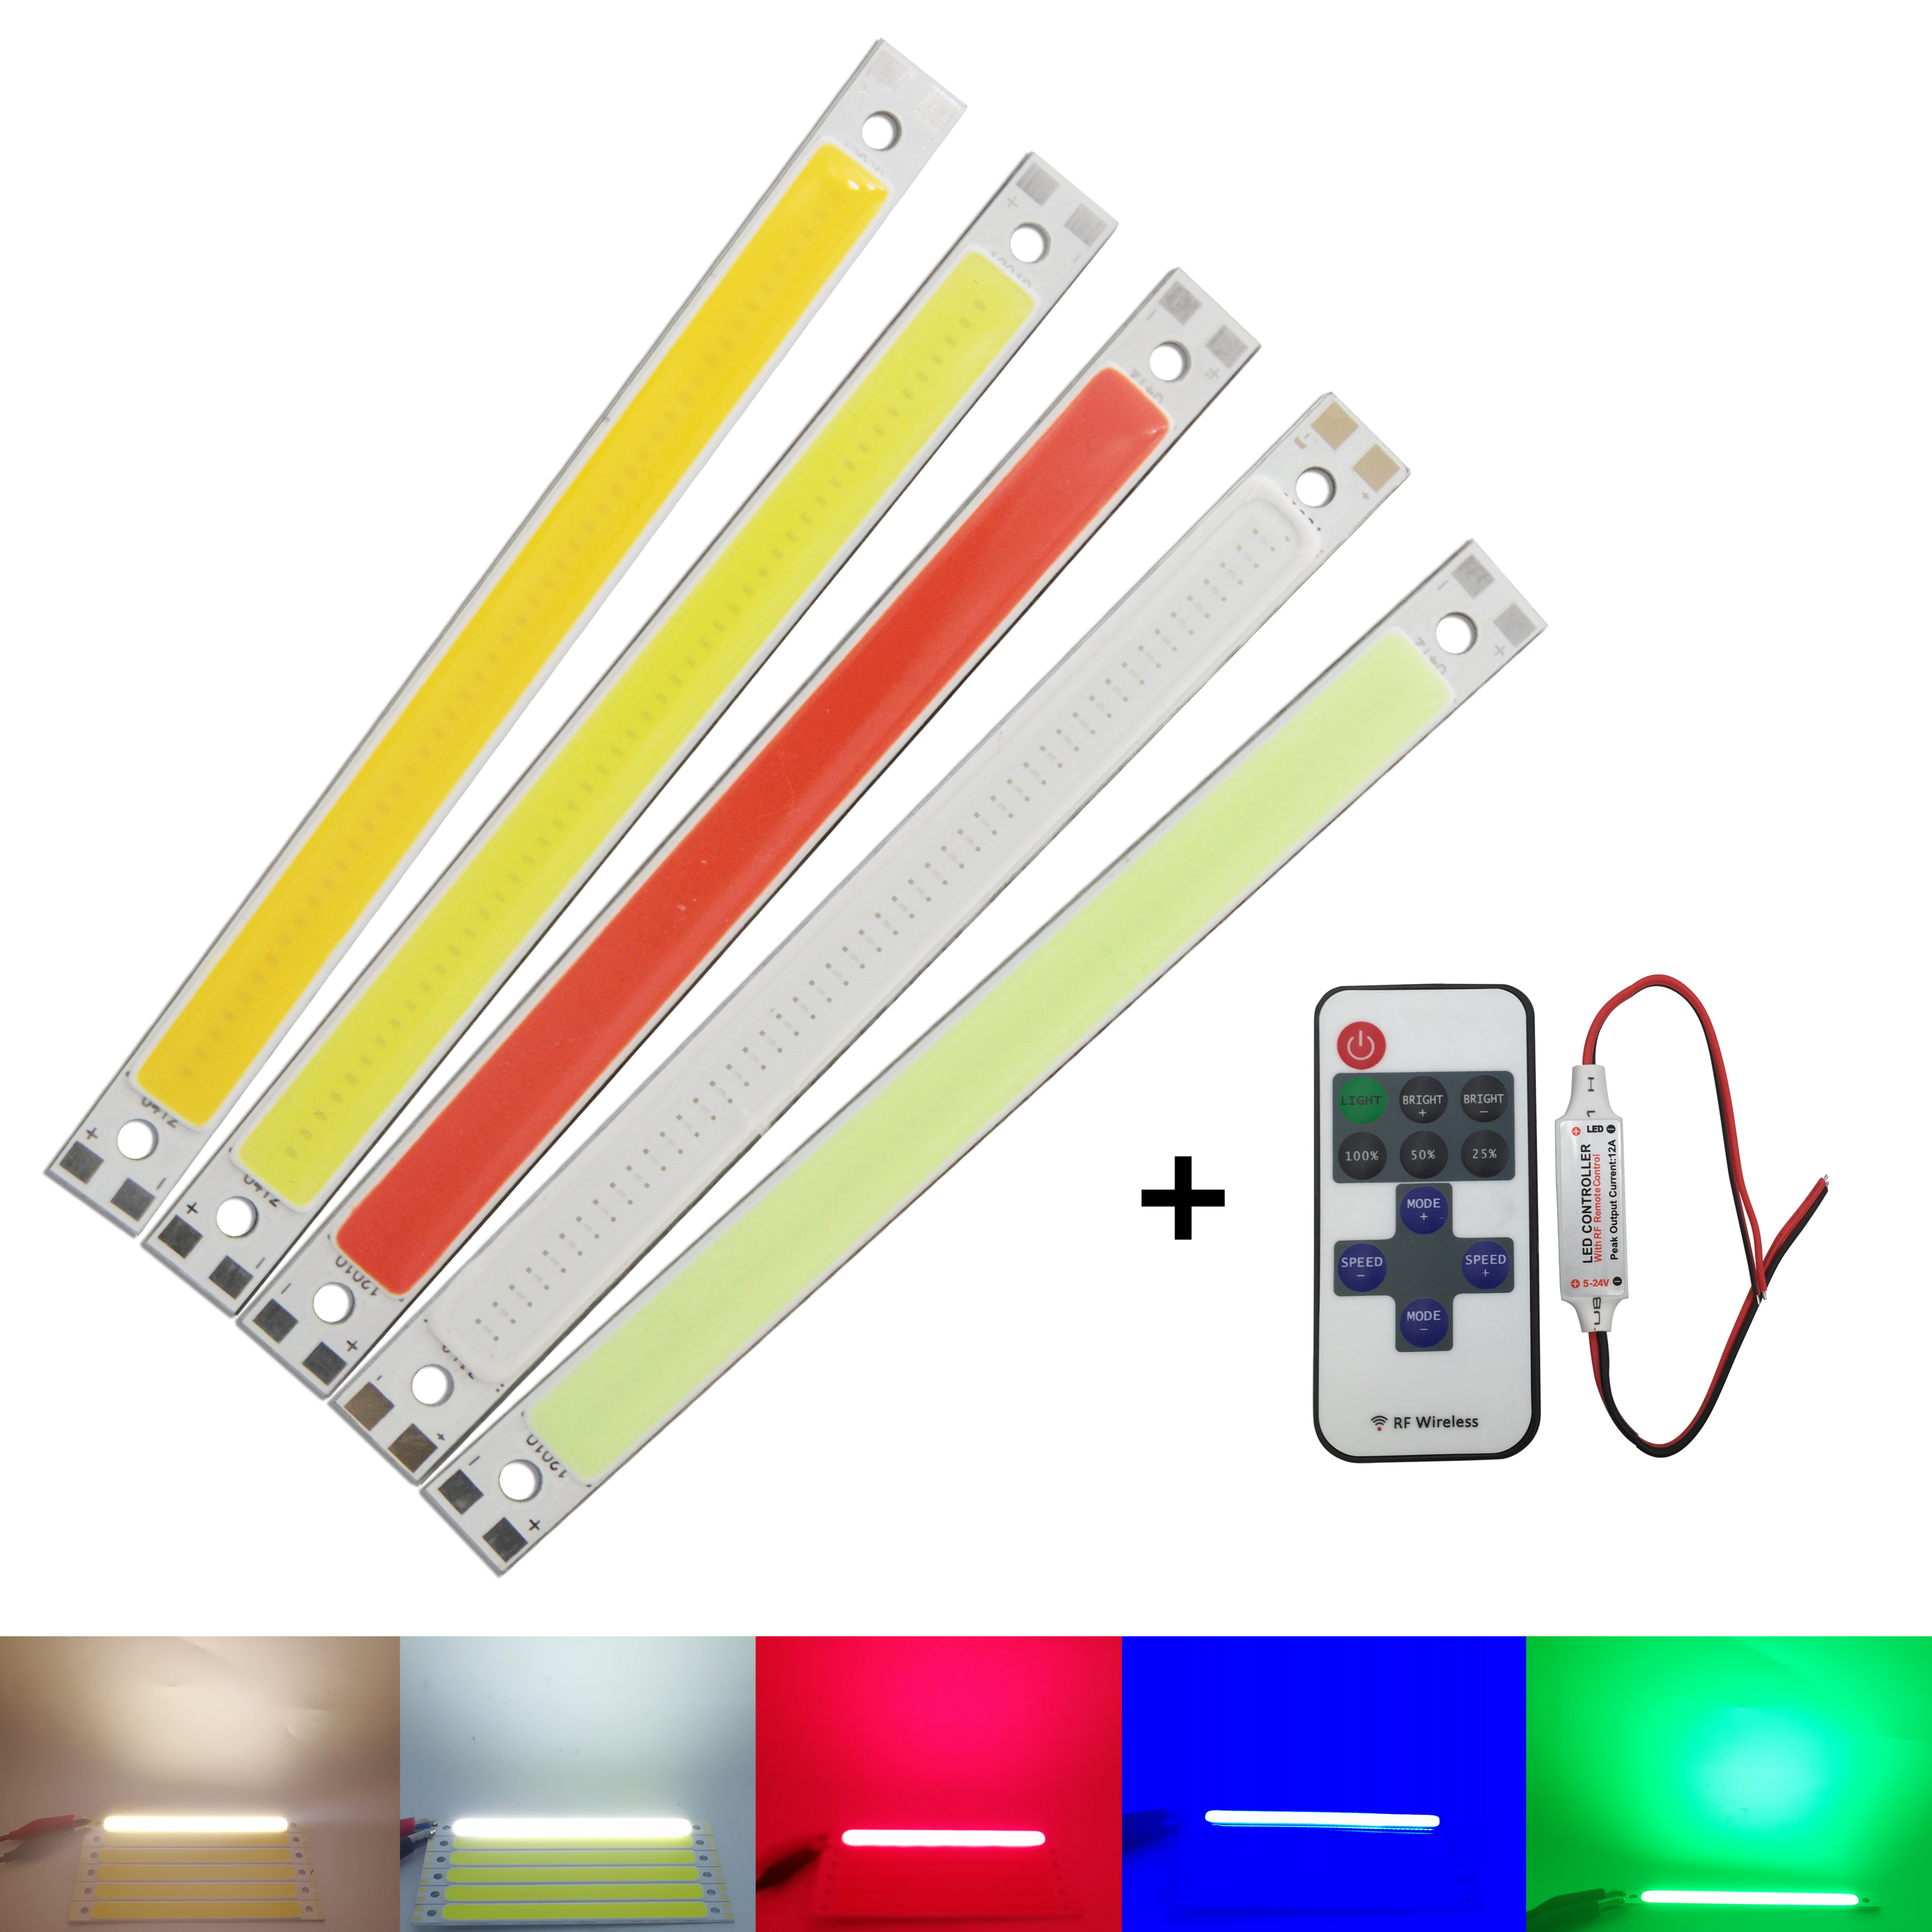 10W 12V DC Dimmable Wiht RF Remmote Controller 120x10mm COB LED Light Source Warm White Blue Red Green For DIY Auto Strip Lamp